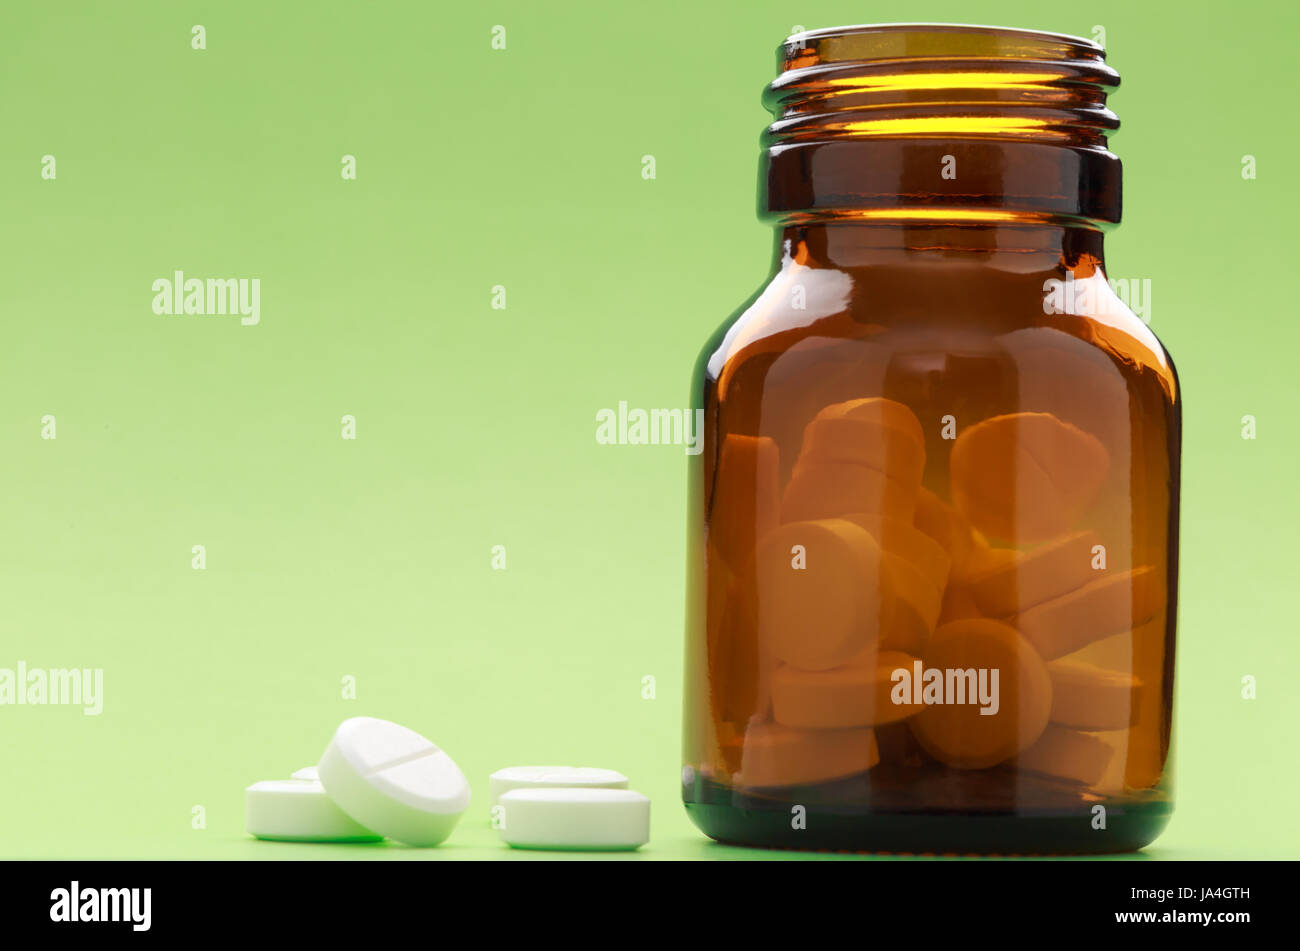 A bottle of brown-glass pills on a green background - Stock Image